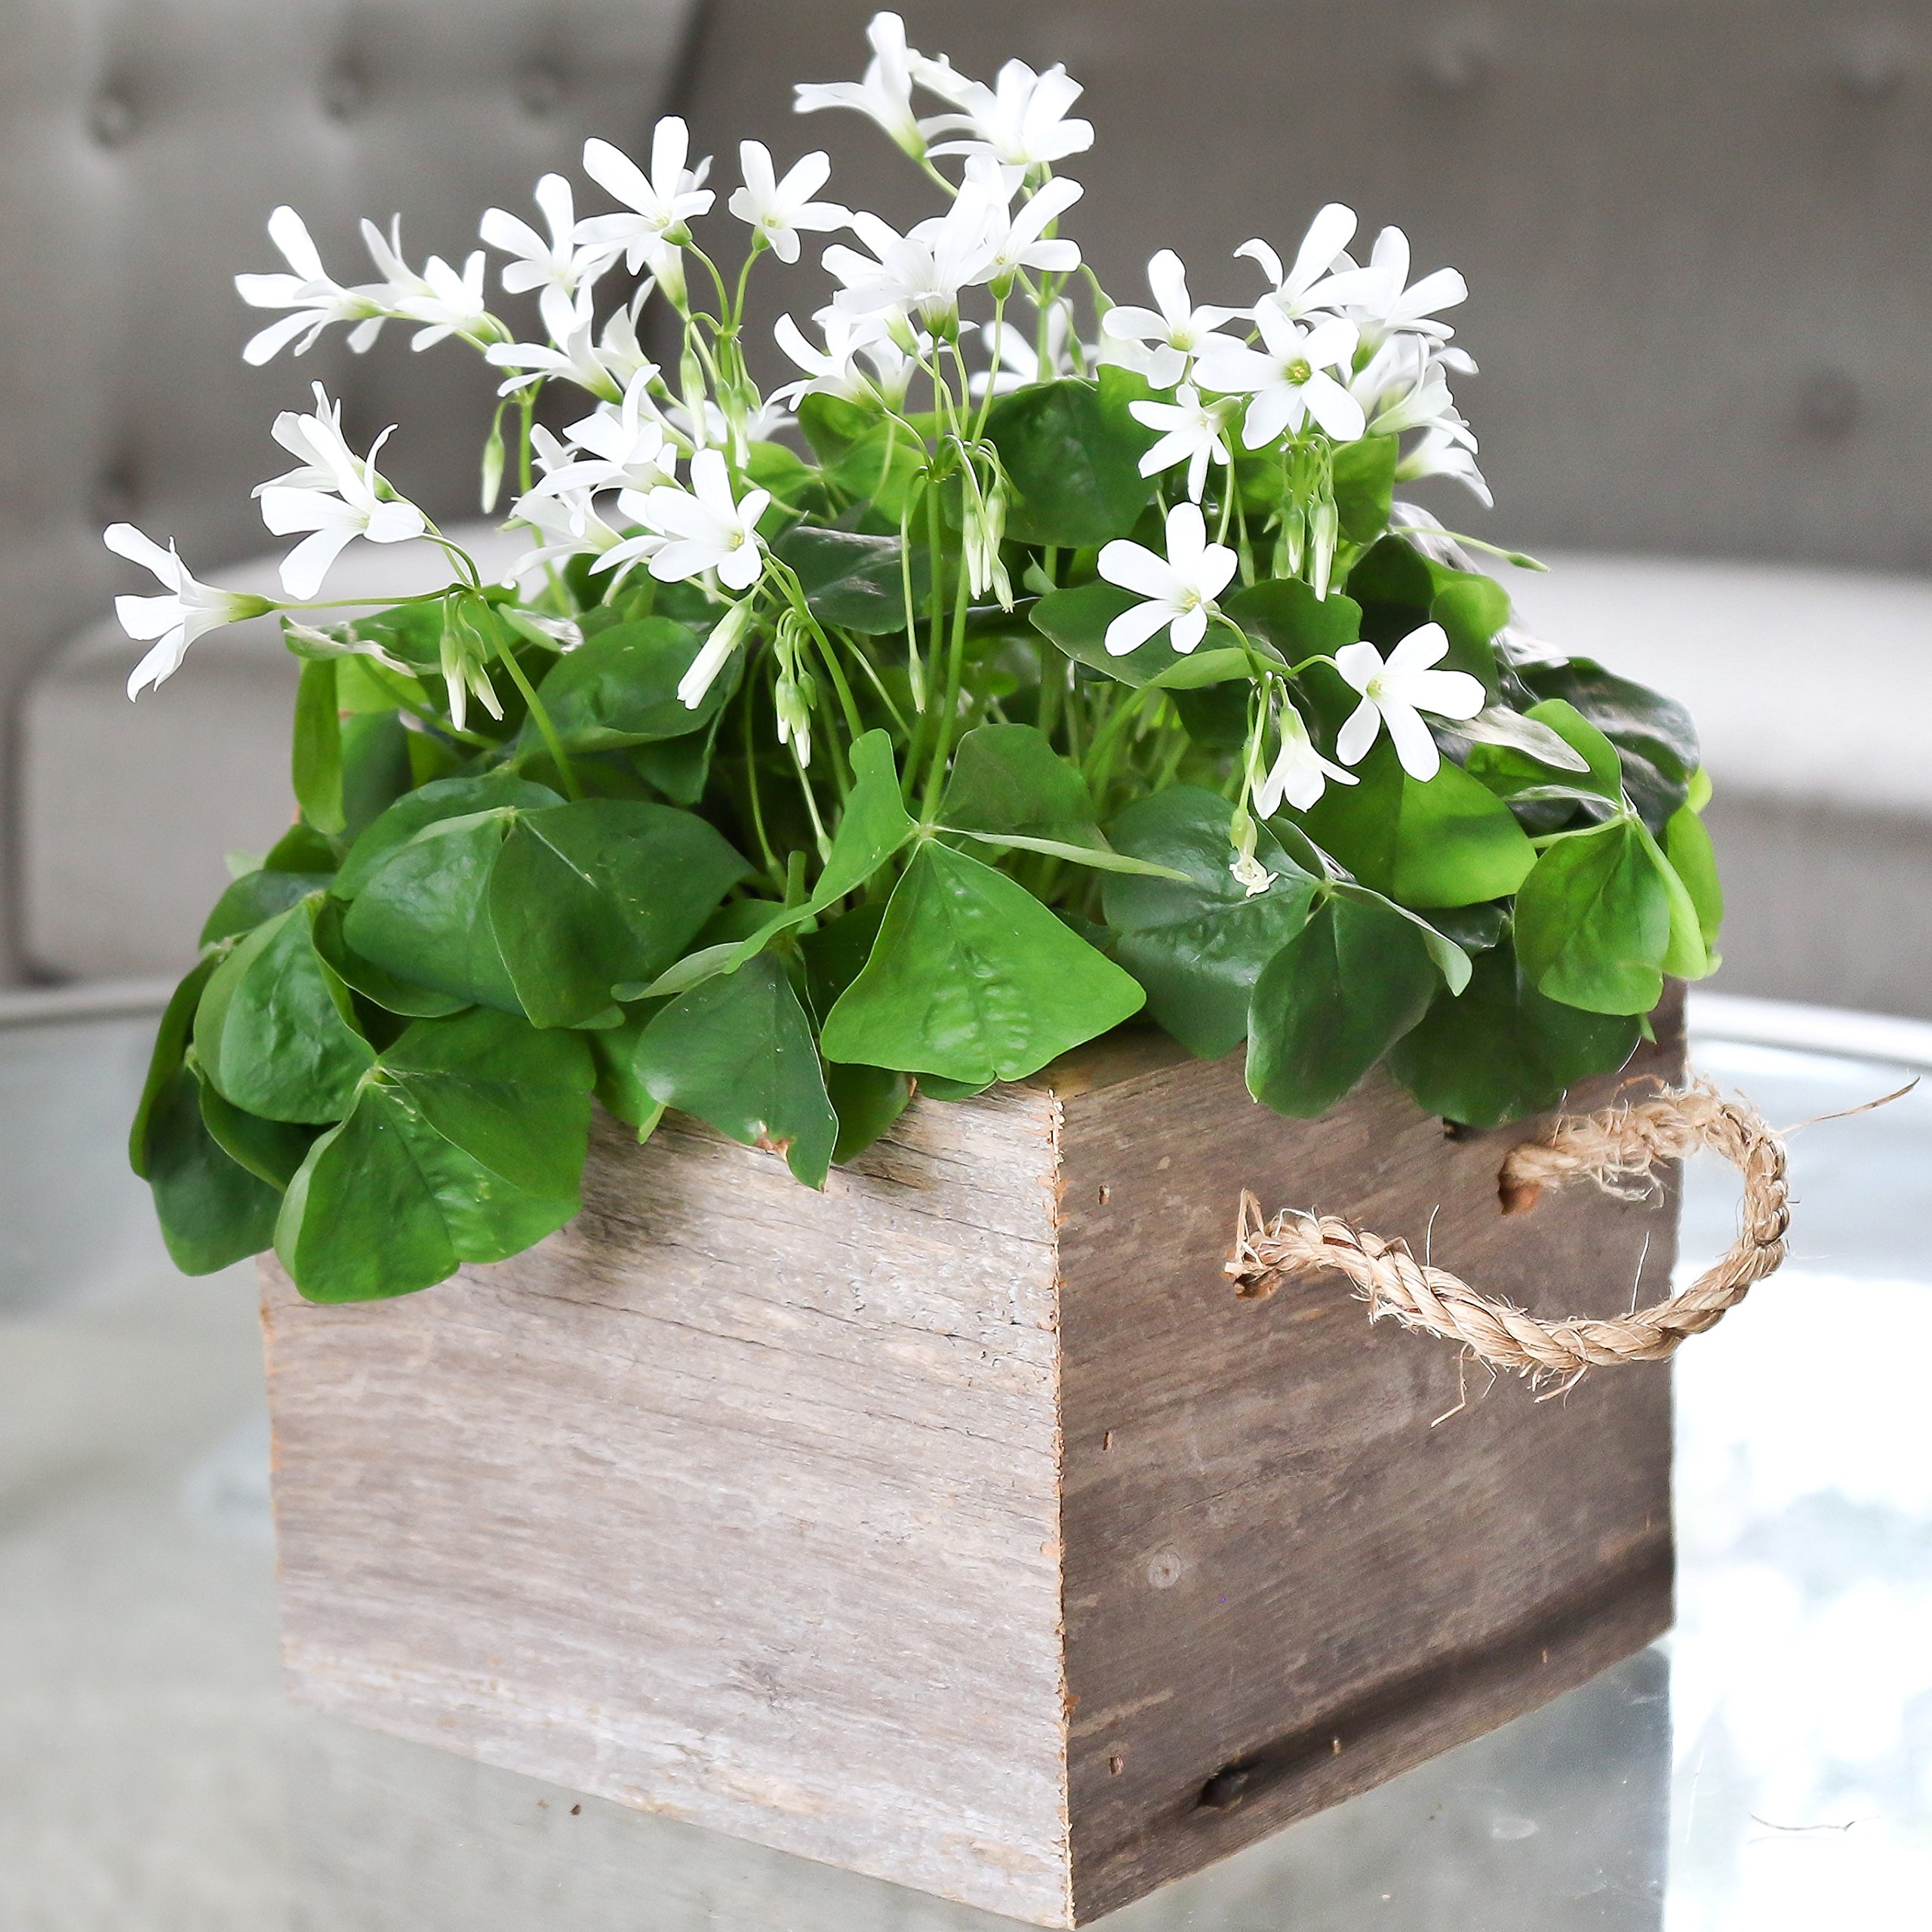 Easy to Grow Oxalis Regnelli Bulbs Gift Kit Pre-Planted in Reclaimed Wood Square Container| Blooms in 6-8 Weeks Grows Anywhere Indoors by Easy to Grow